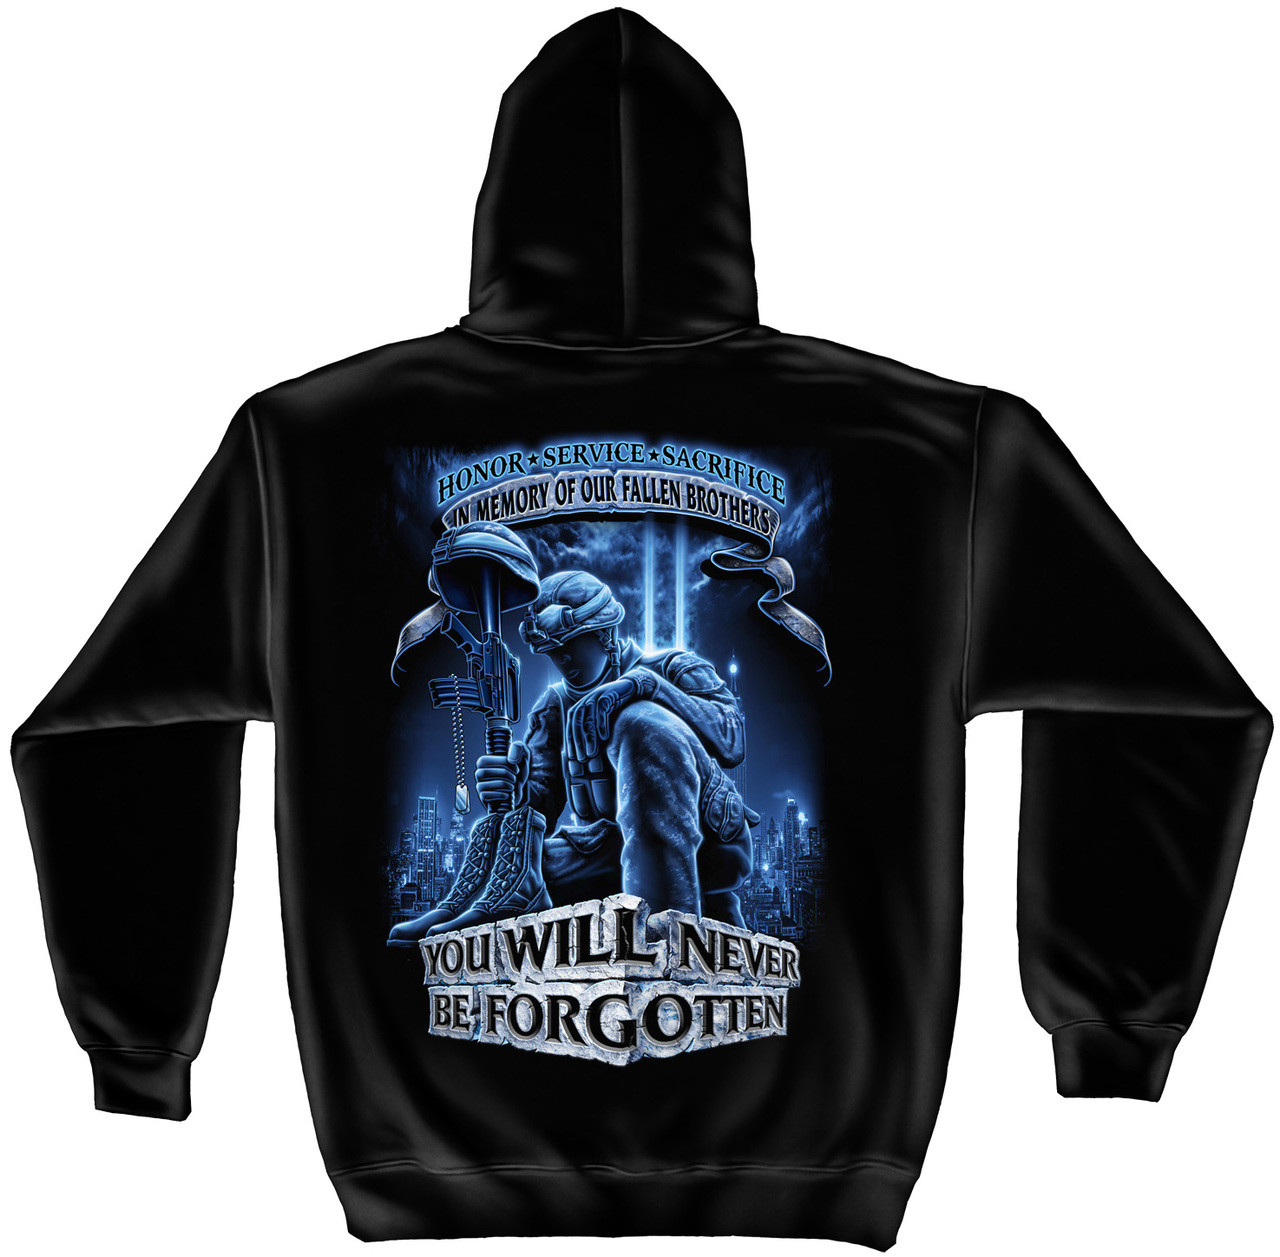 """**(NEW-OFFICIALLY-LICENSED-U.S.MILITARY-VETERANS,""""YOU-WILL-NEVER-BE-FORGOTTEN/IN-MEMORY-OF-OUR-FALLEN-BROTHERS"""",NICE-CUSTOM-DETAILED-GRAPHIC-PRINTED/PREMIUM-DOUBLE-SIDED-WARM-FLEECE-HOODIES:)**"""